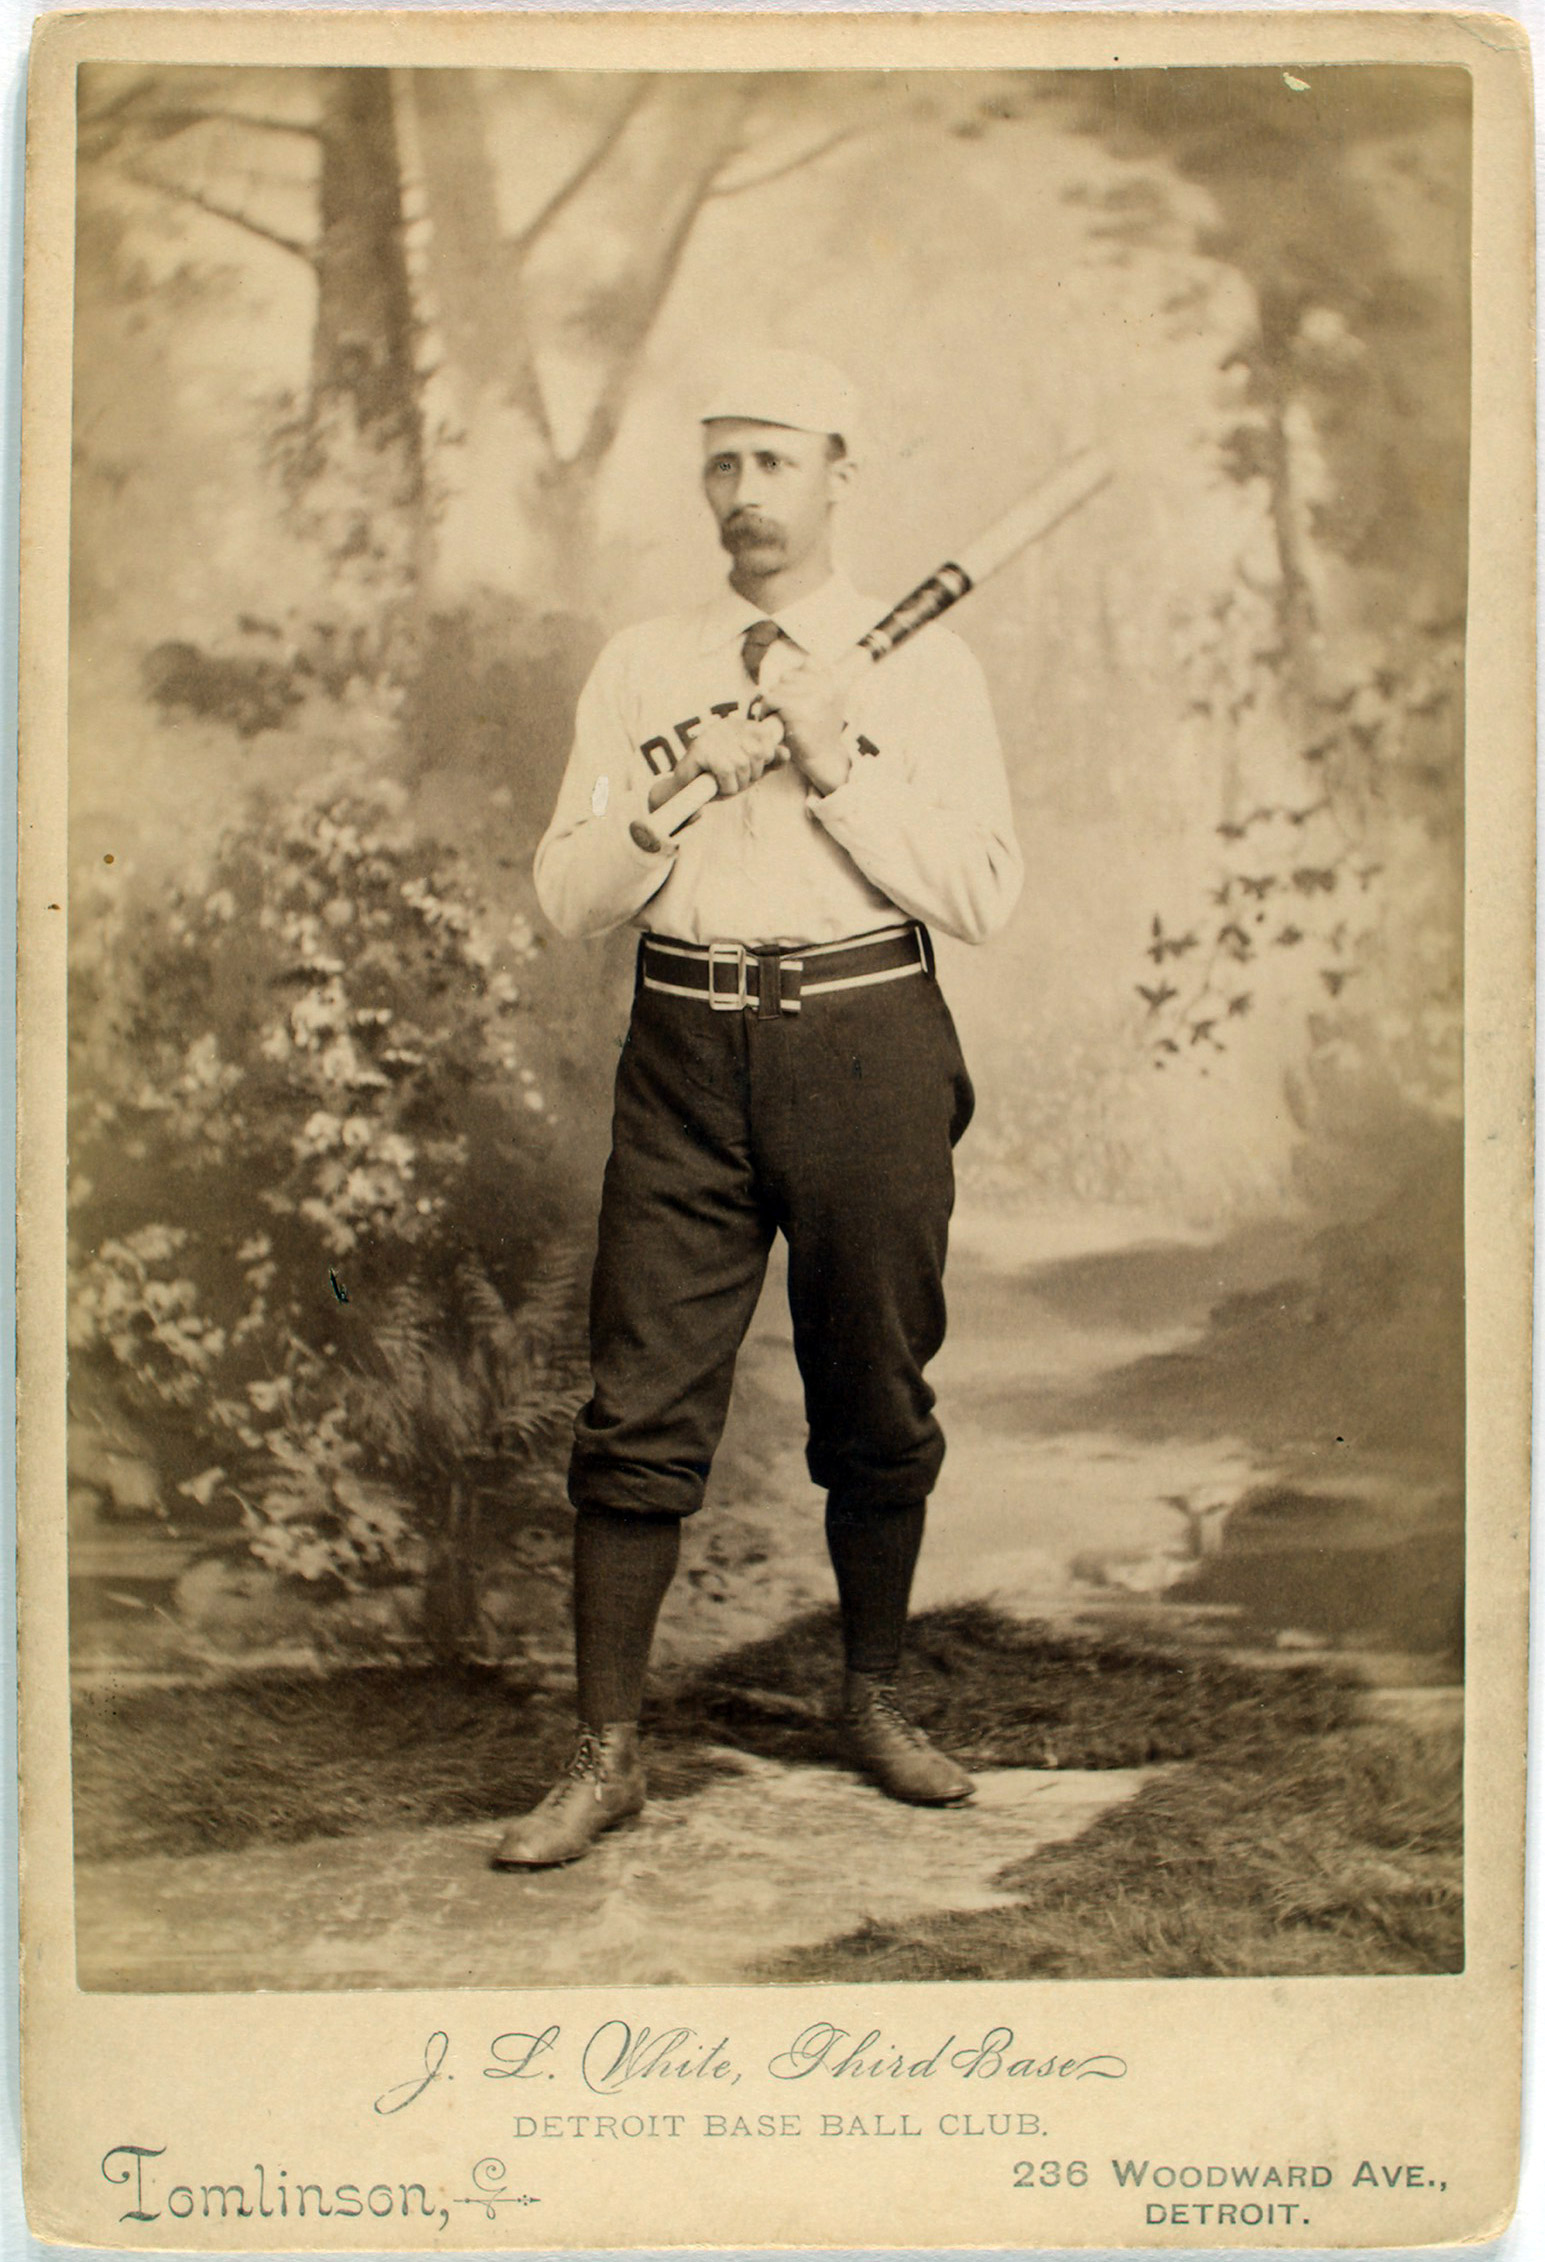 Deacon White, 3rd base for the Detroit Wolverines, 1888. From the A. G. Spalding Baseball Collection.